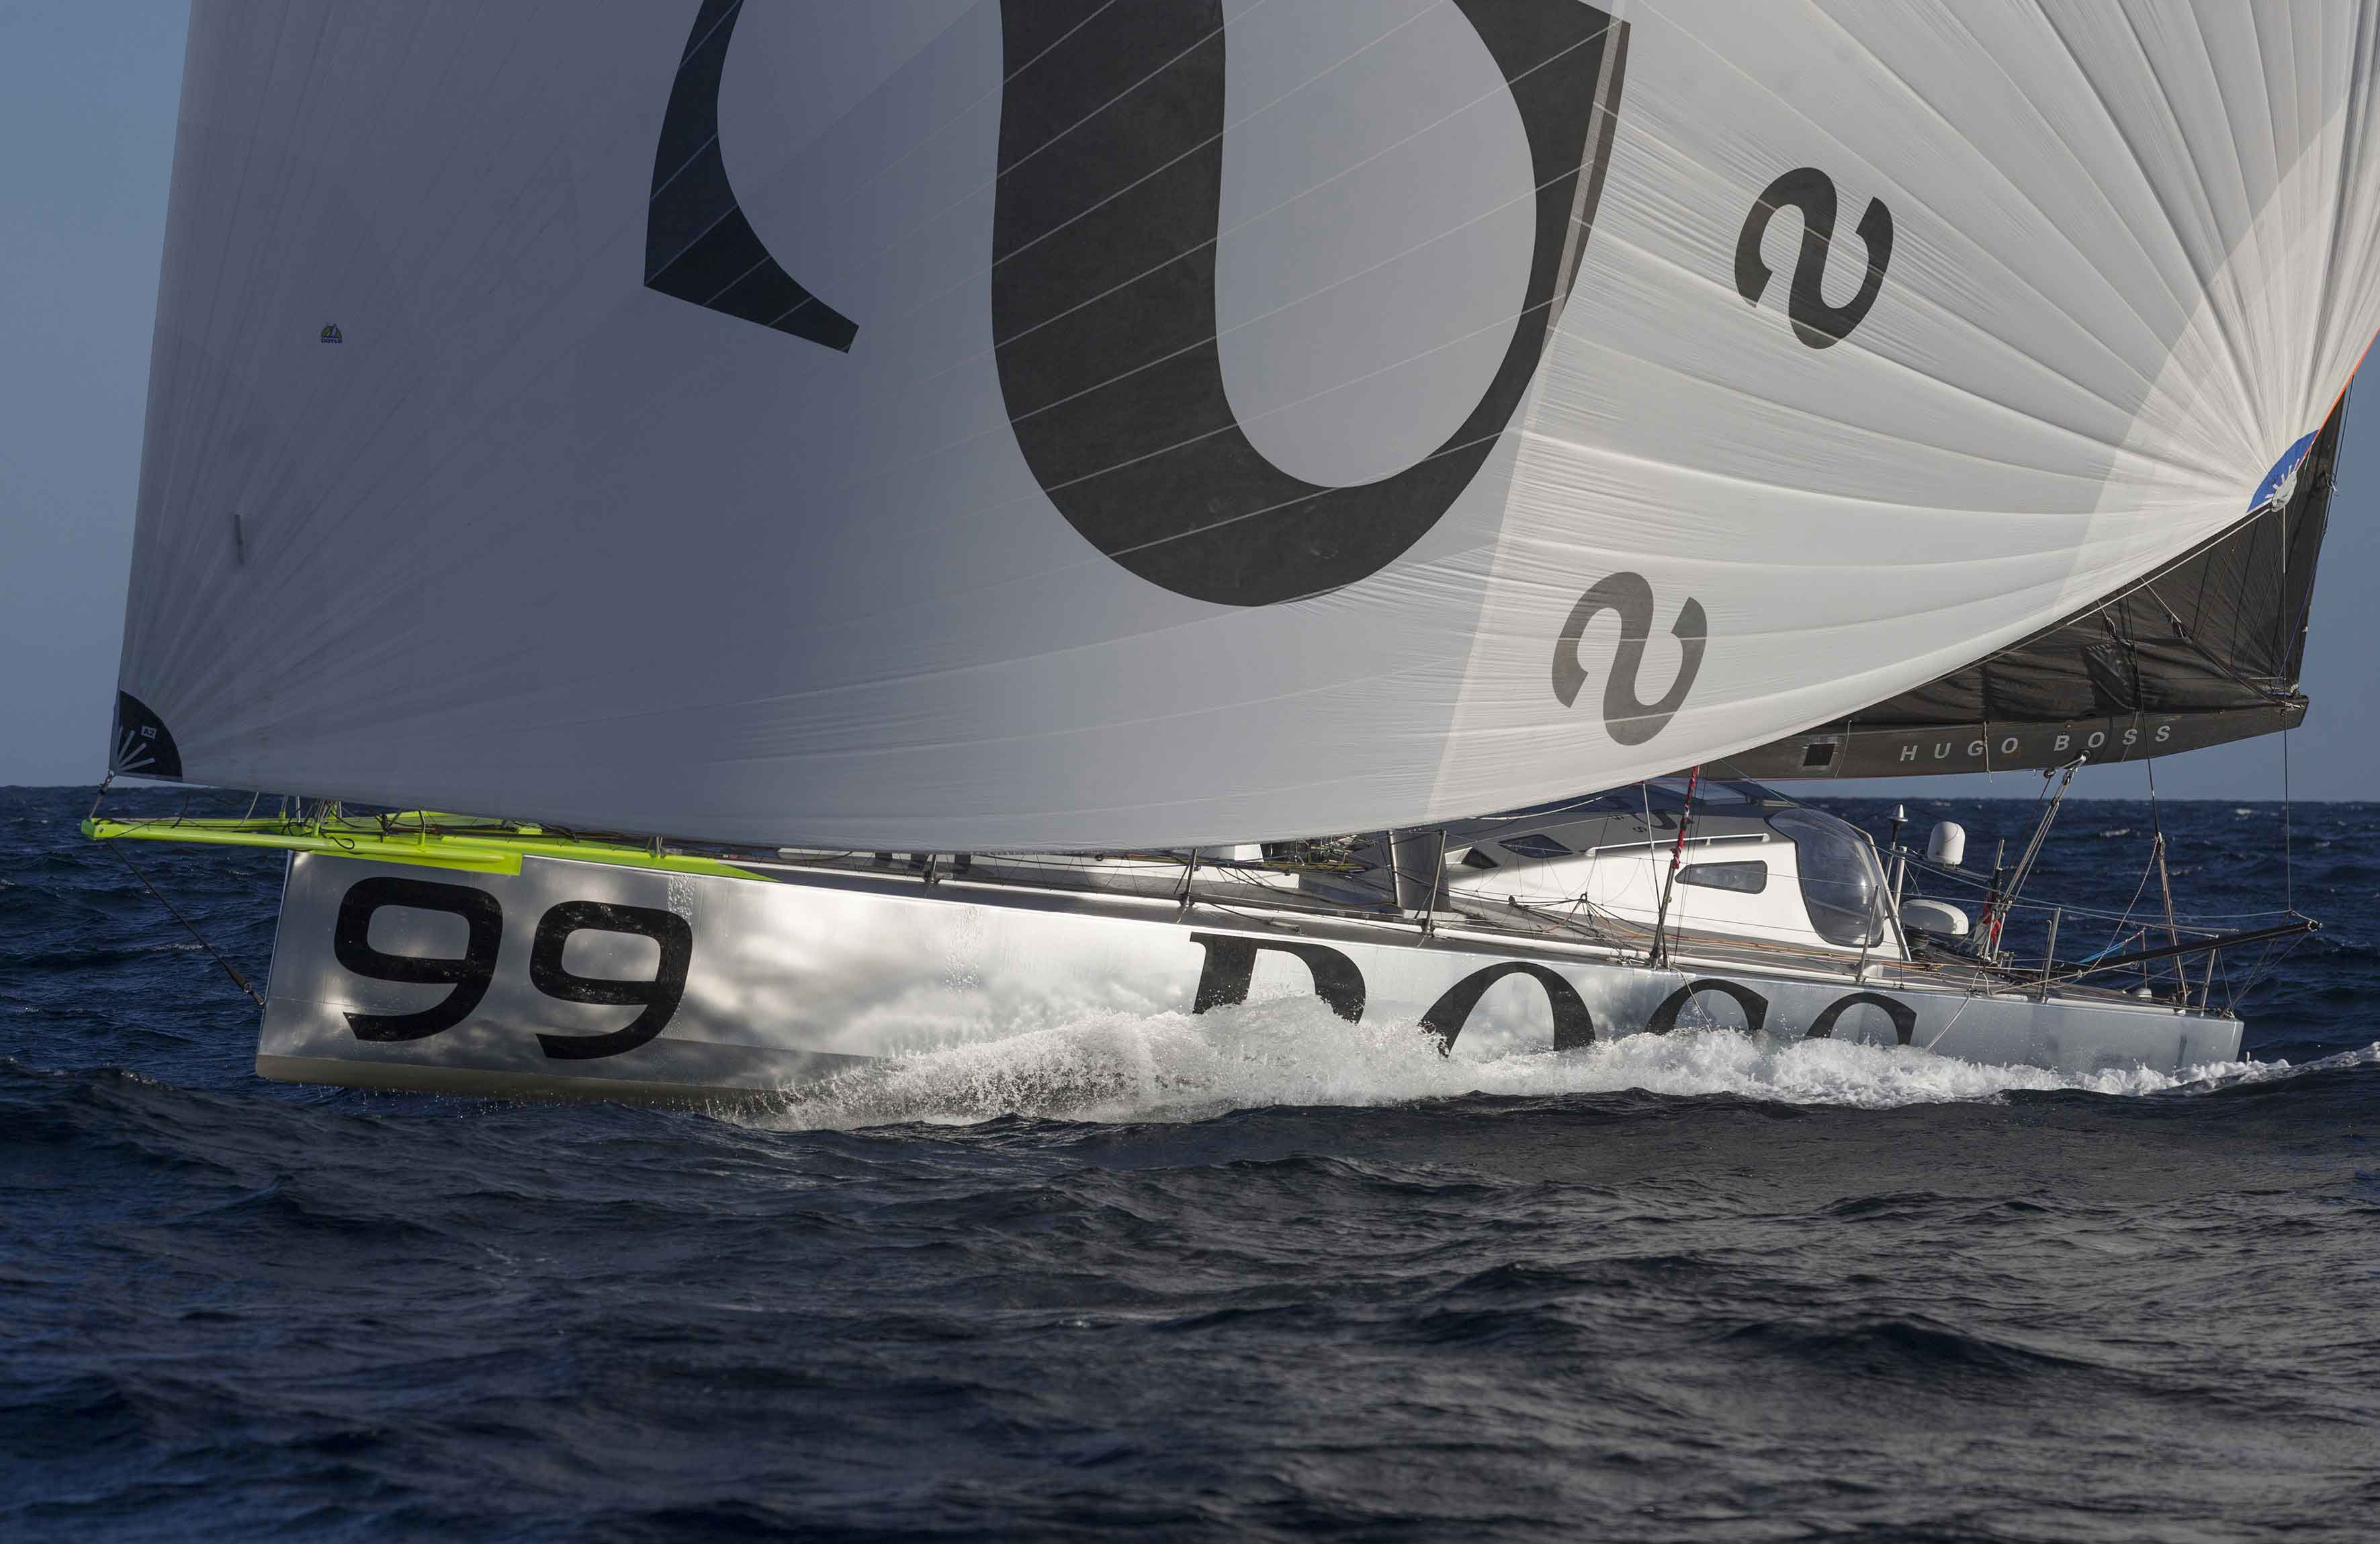 Doyle Sails Hugo Boss